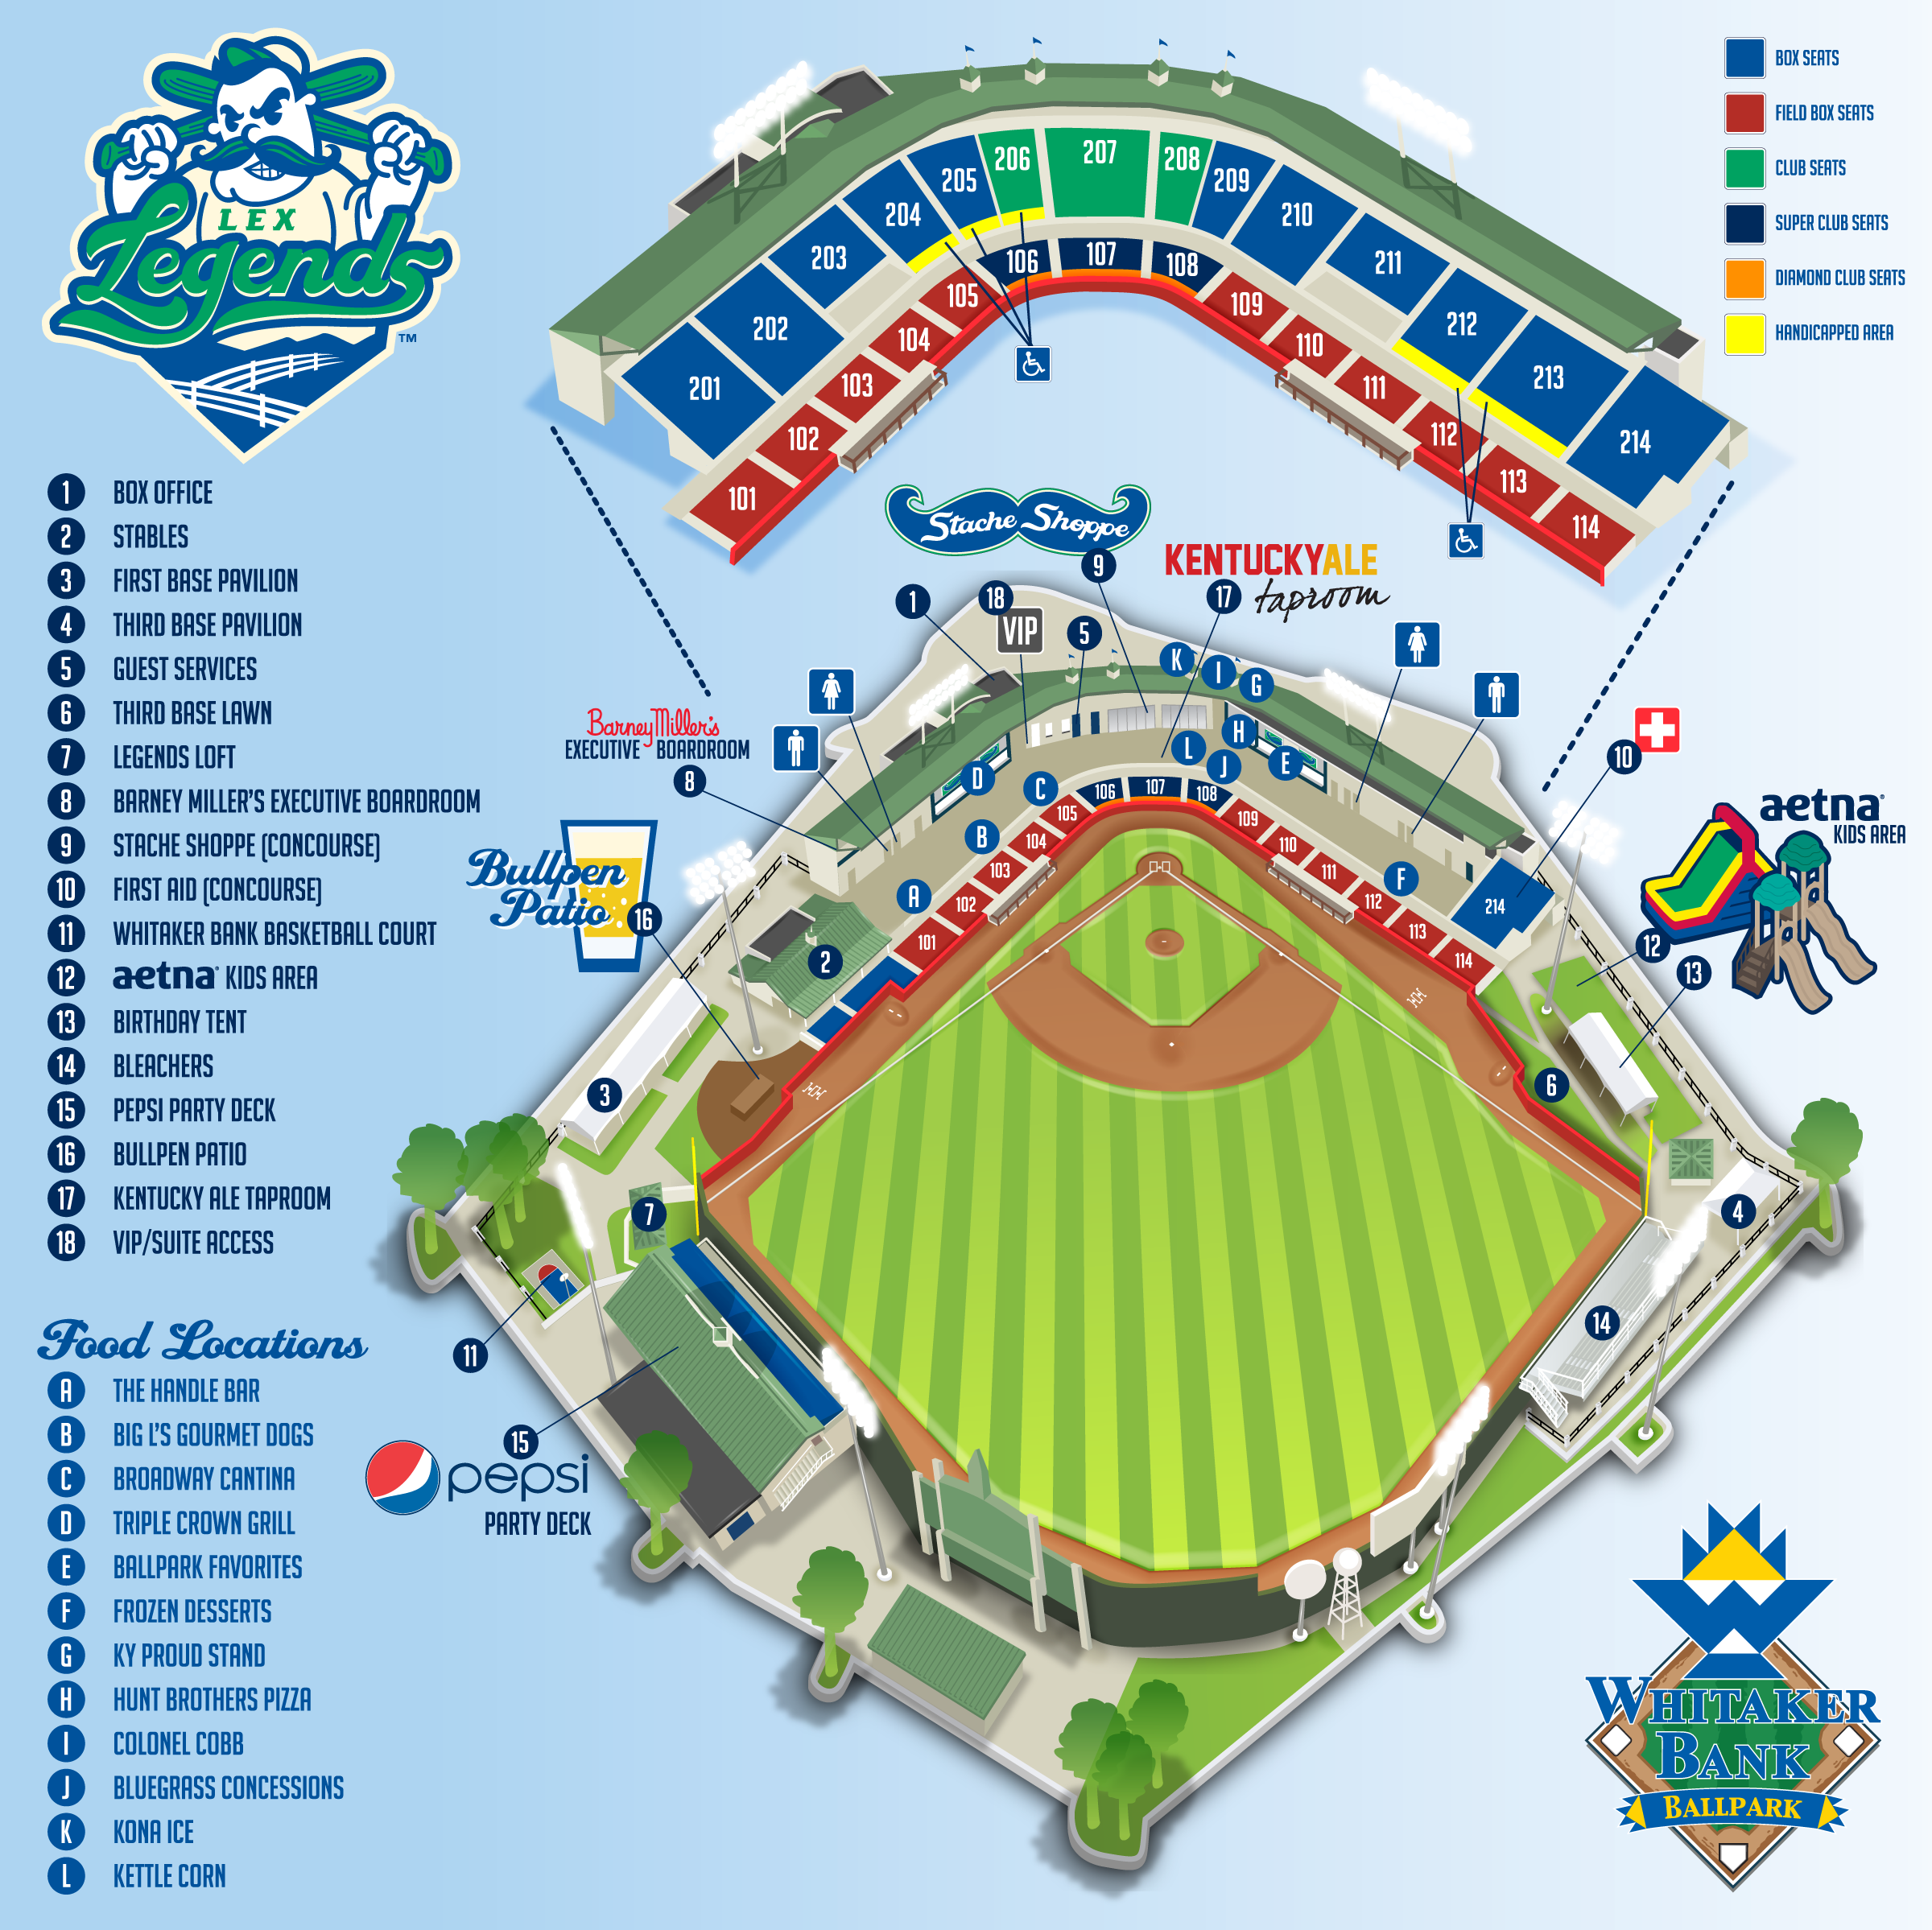 The official site of the lexington legends lexingtonlegends whitaker bank ballpark diagram malvernweather Gallery